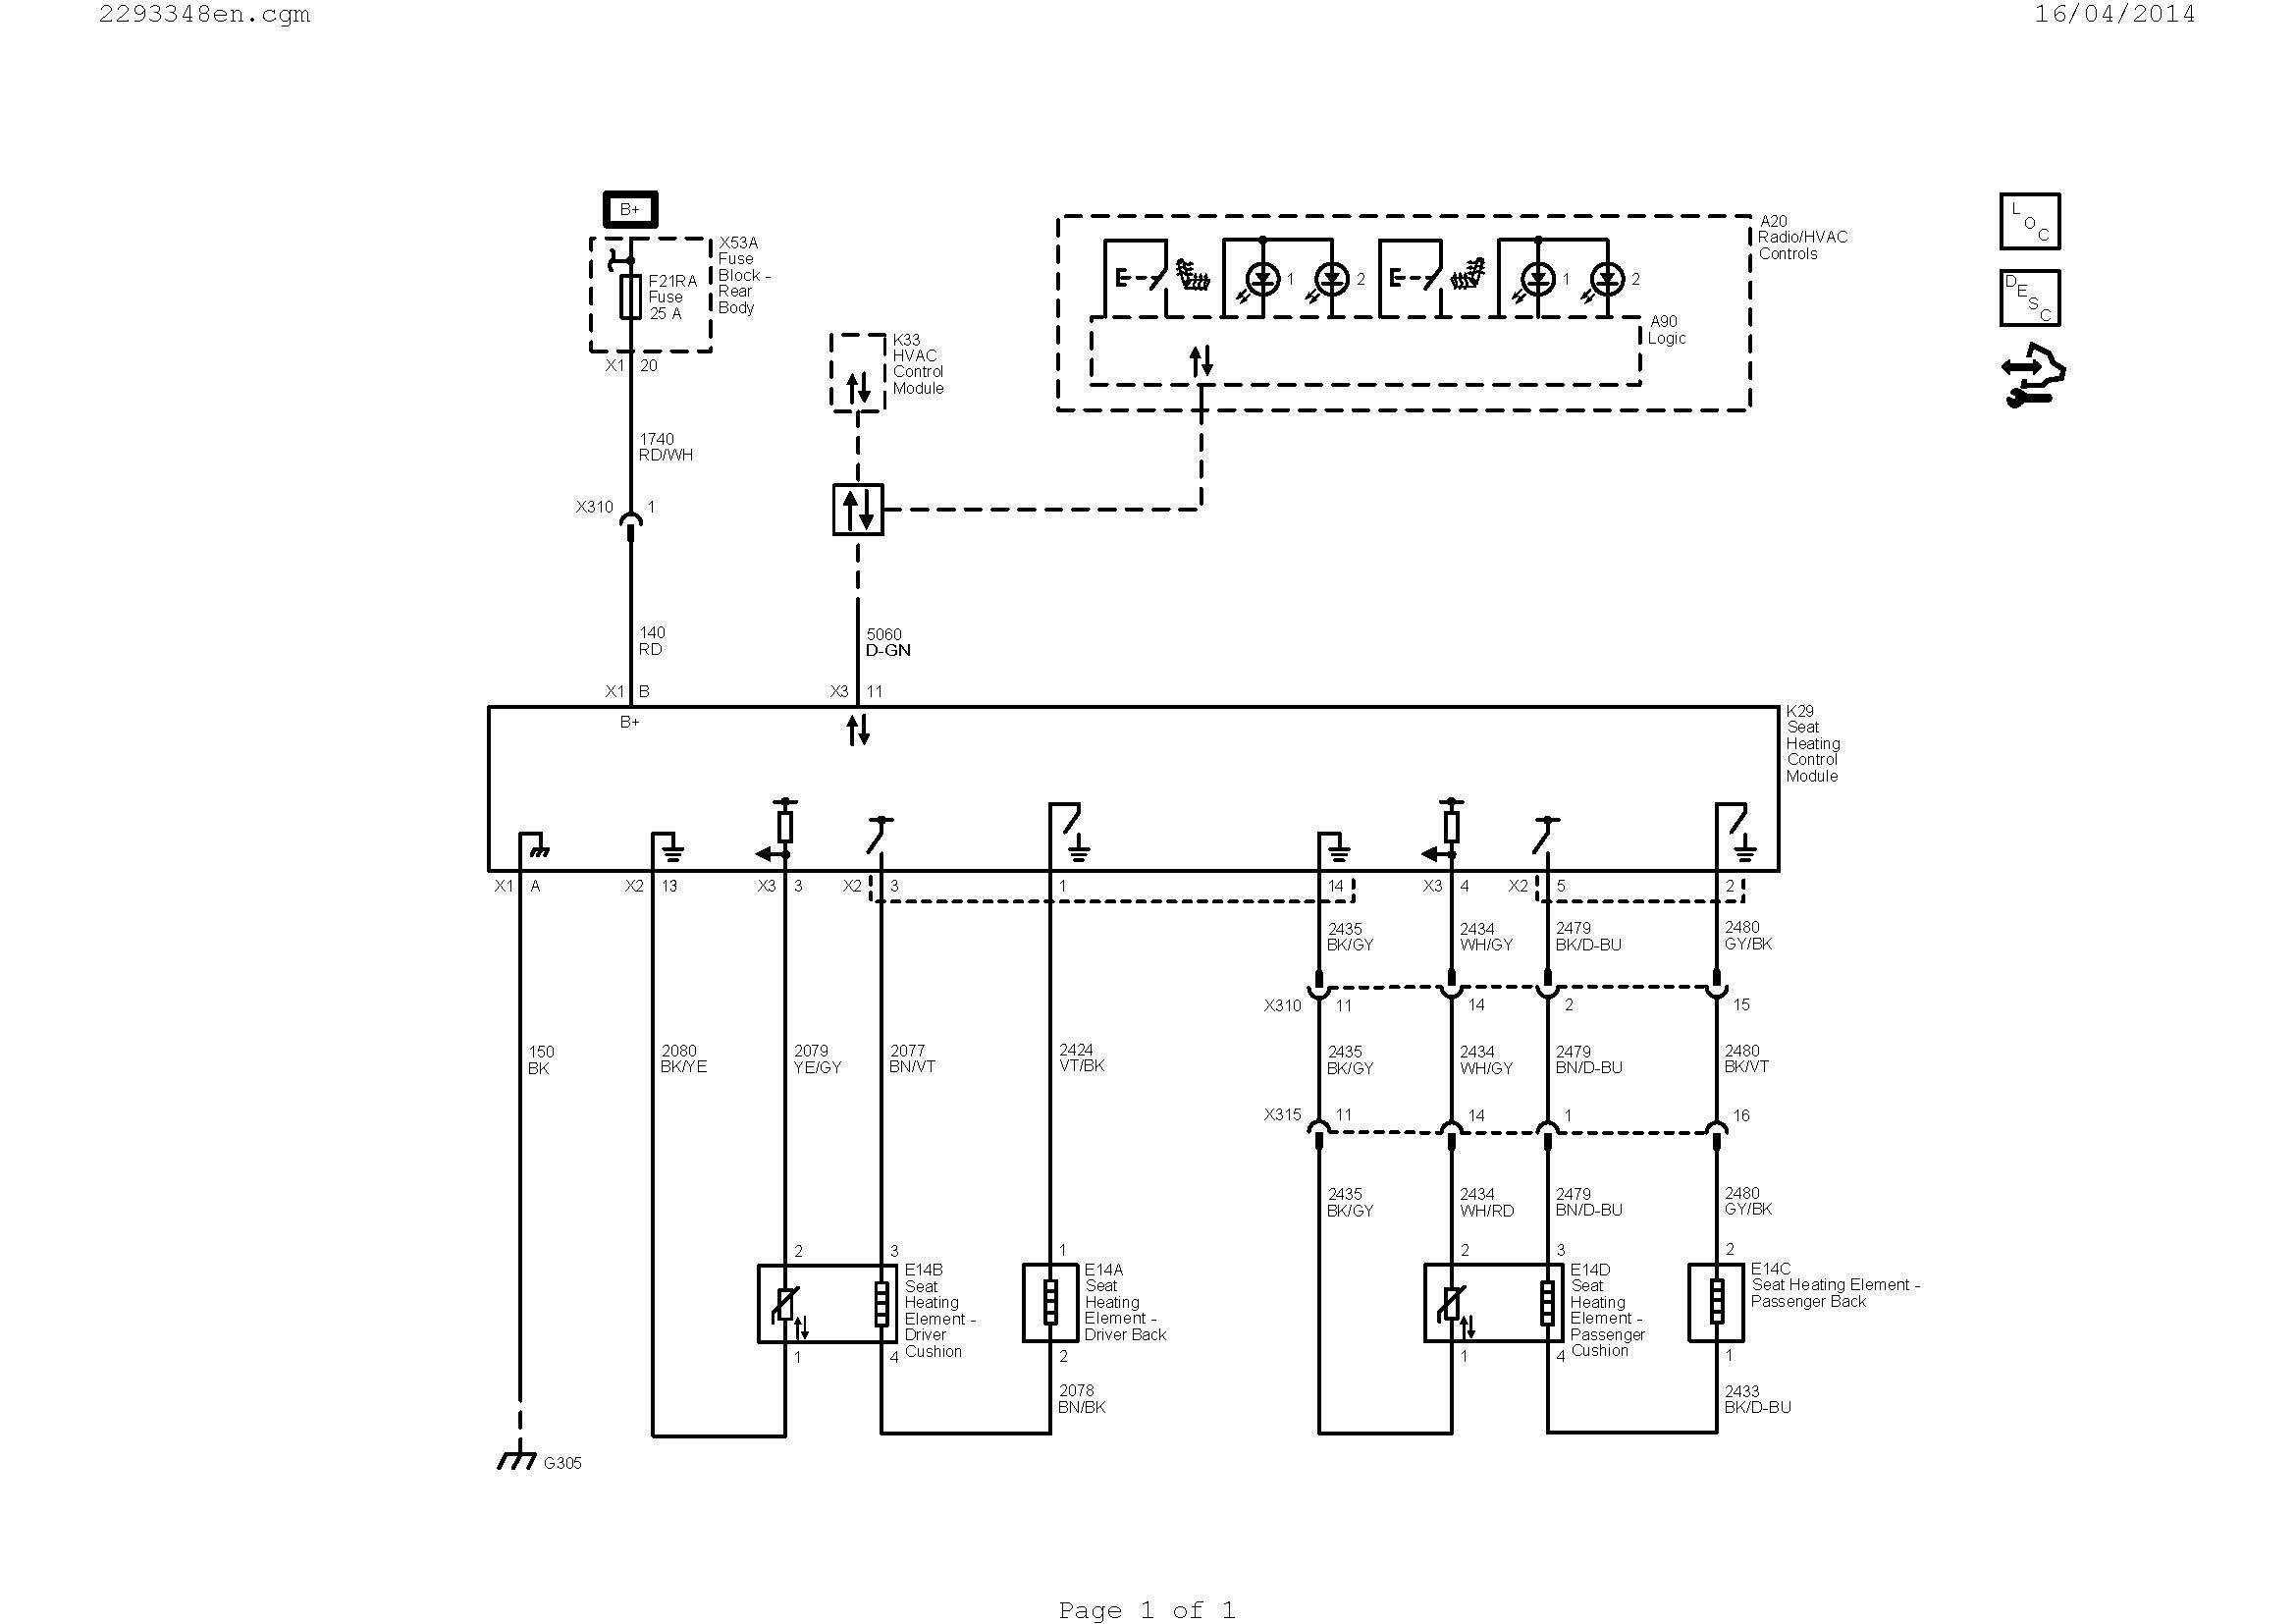 Honeywell Heat Pump thermostat Wiring Diagram How to Wire A Heat Pump thermostat Honeywell Wiring Diagram 2 Ly Of Honeywell Heat Pump thermostat Wiring Diagram